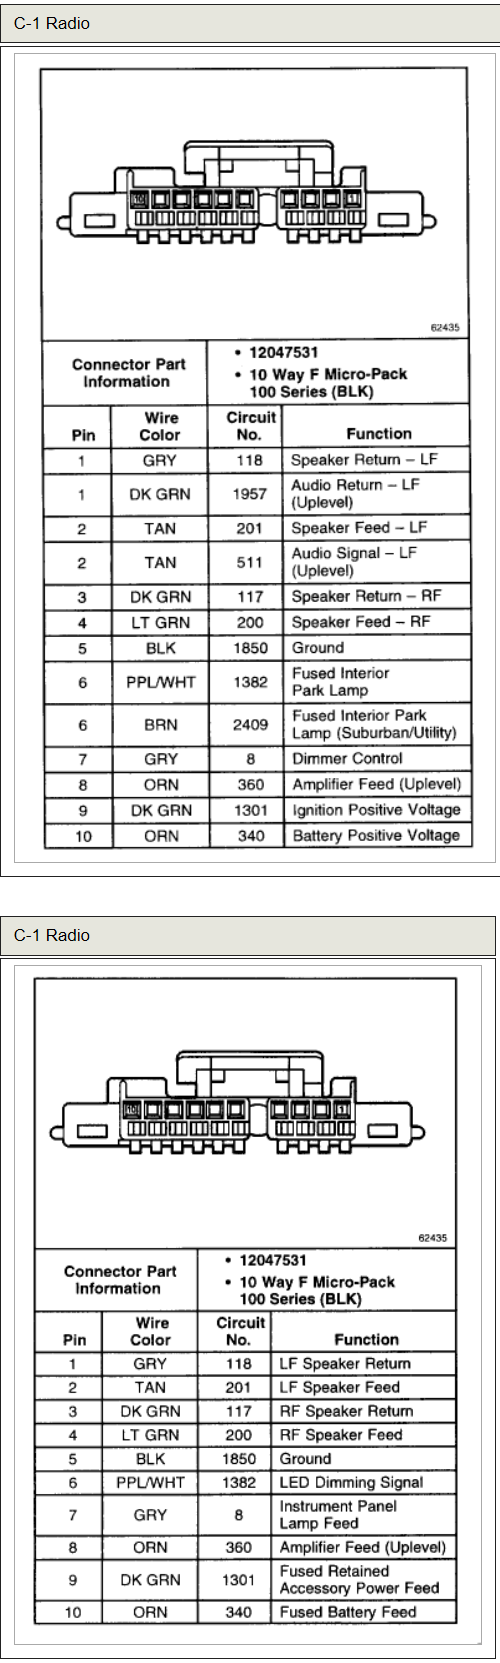 Chevrolet Tahoe LS 2000 stereo wiring connector 2 chevrolet car radio stereo audio wiring diagram autoradio 2004 trailblazer stereo wiring diagram at reclaimingppi.co